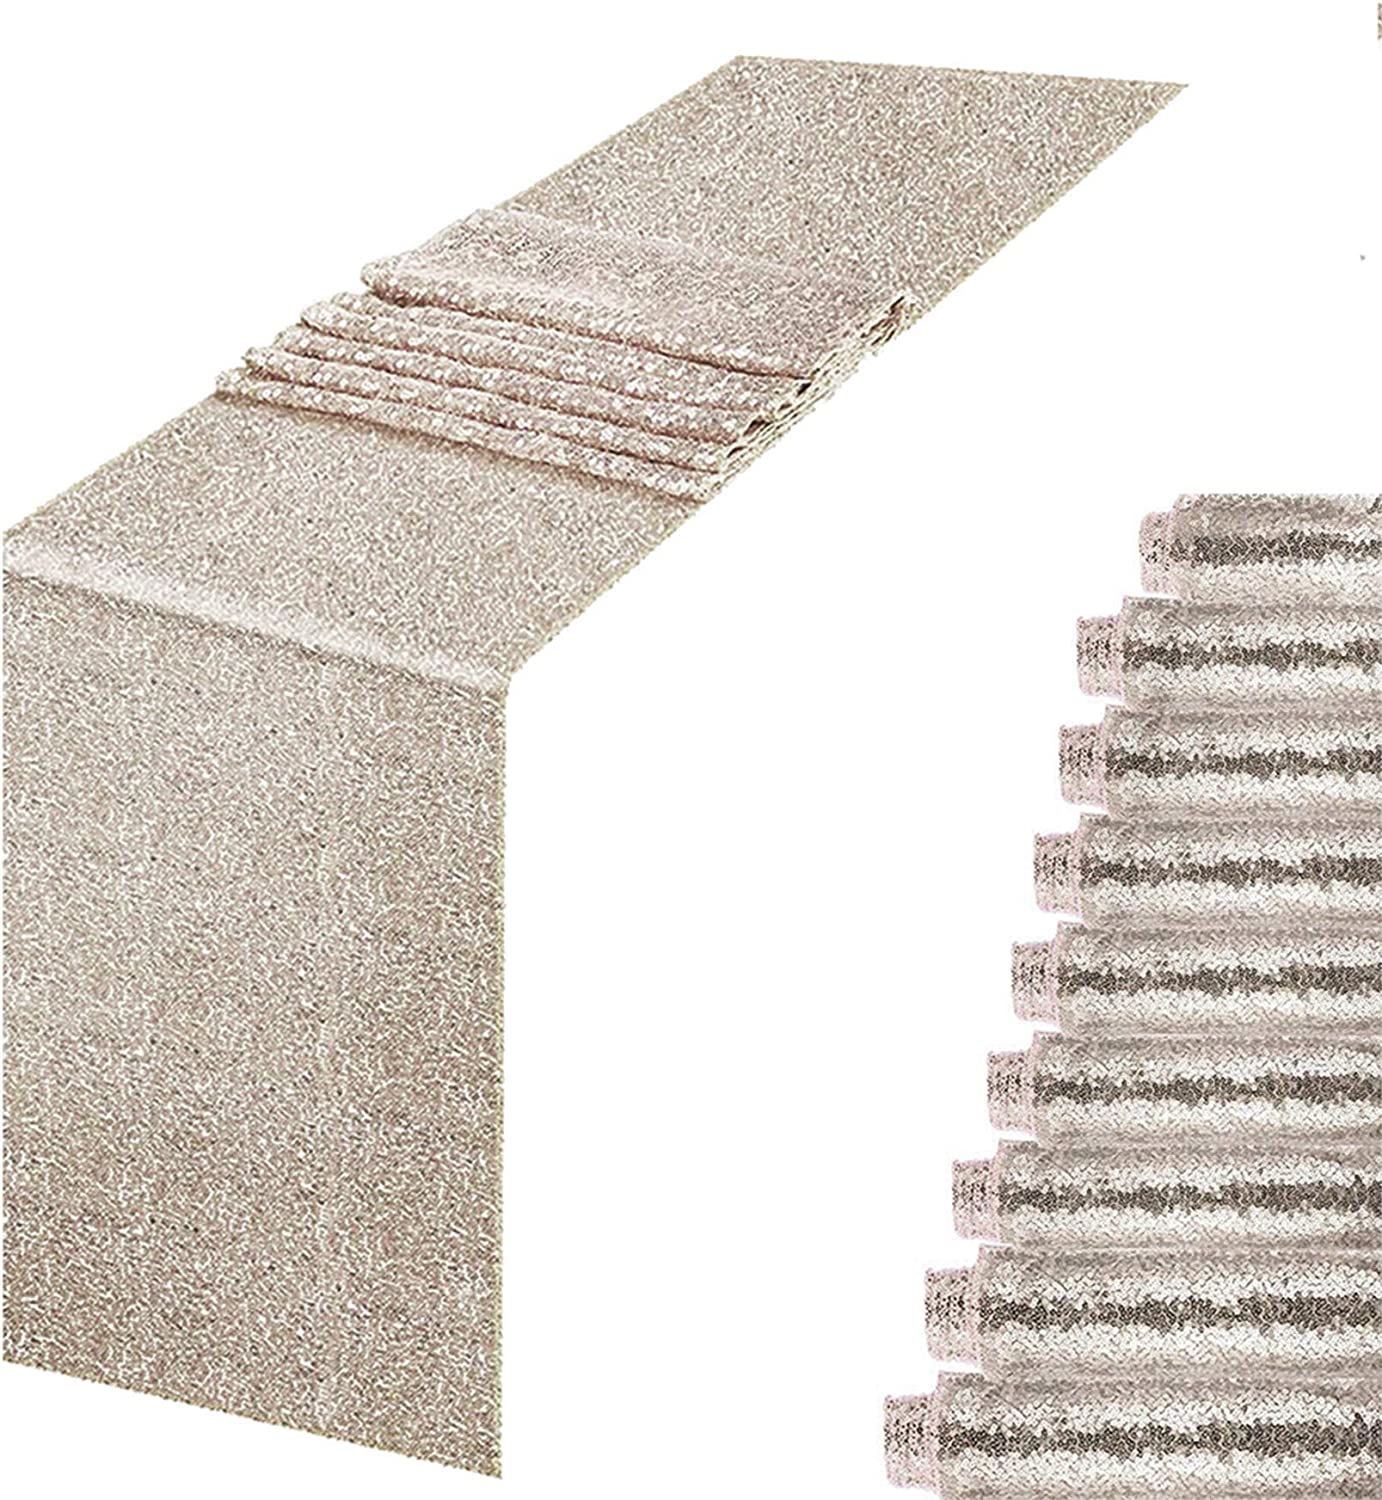 MENGQ Champagne Sequin Table Runner gift 10 Super popular specialty store of Sparkle Pack 12